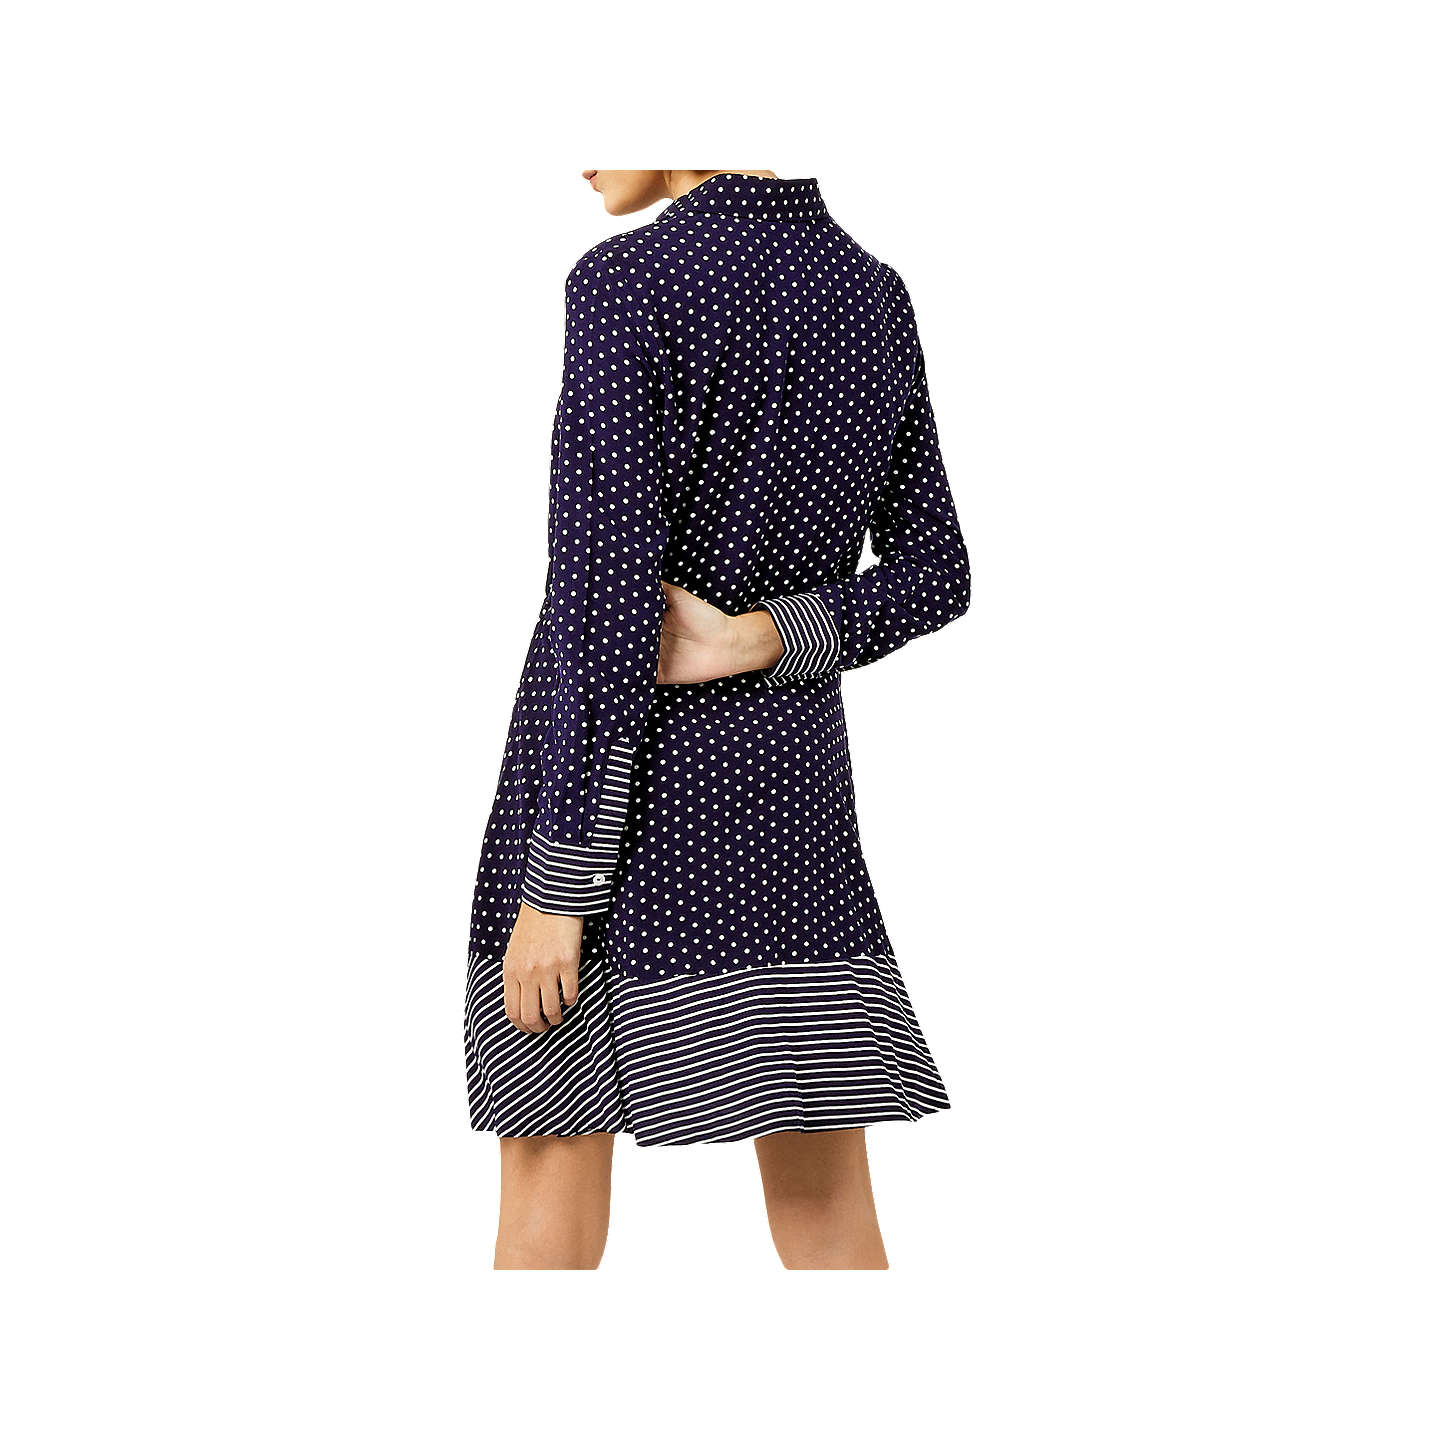 BuyWarehouse Stripe And Spot Shirt Dress, Blue, 6 Online at johnlewis.com